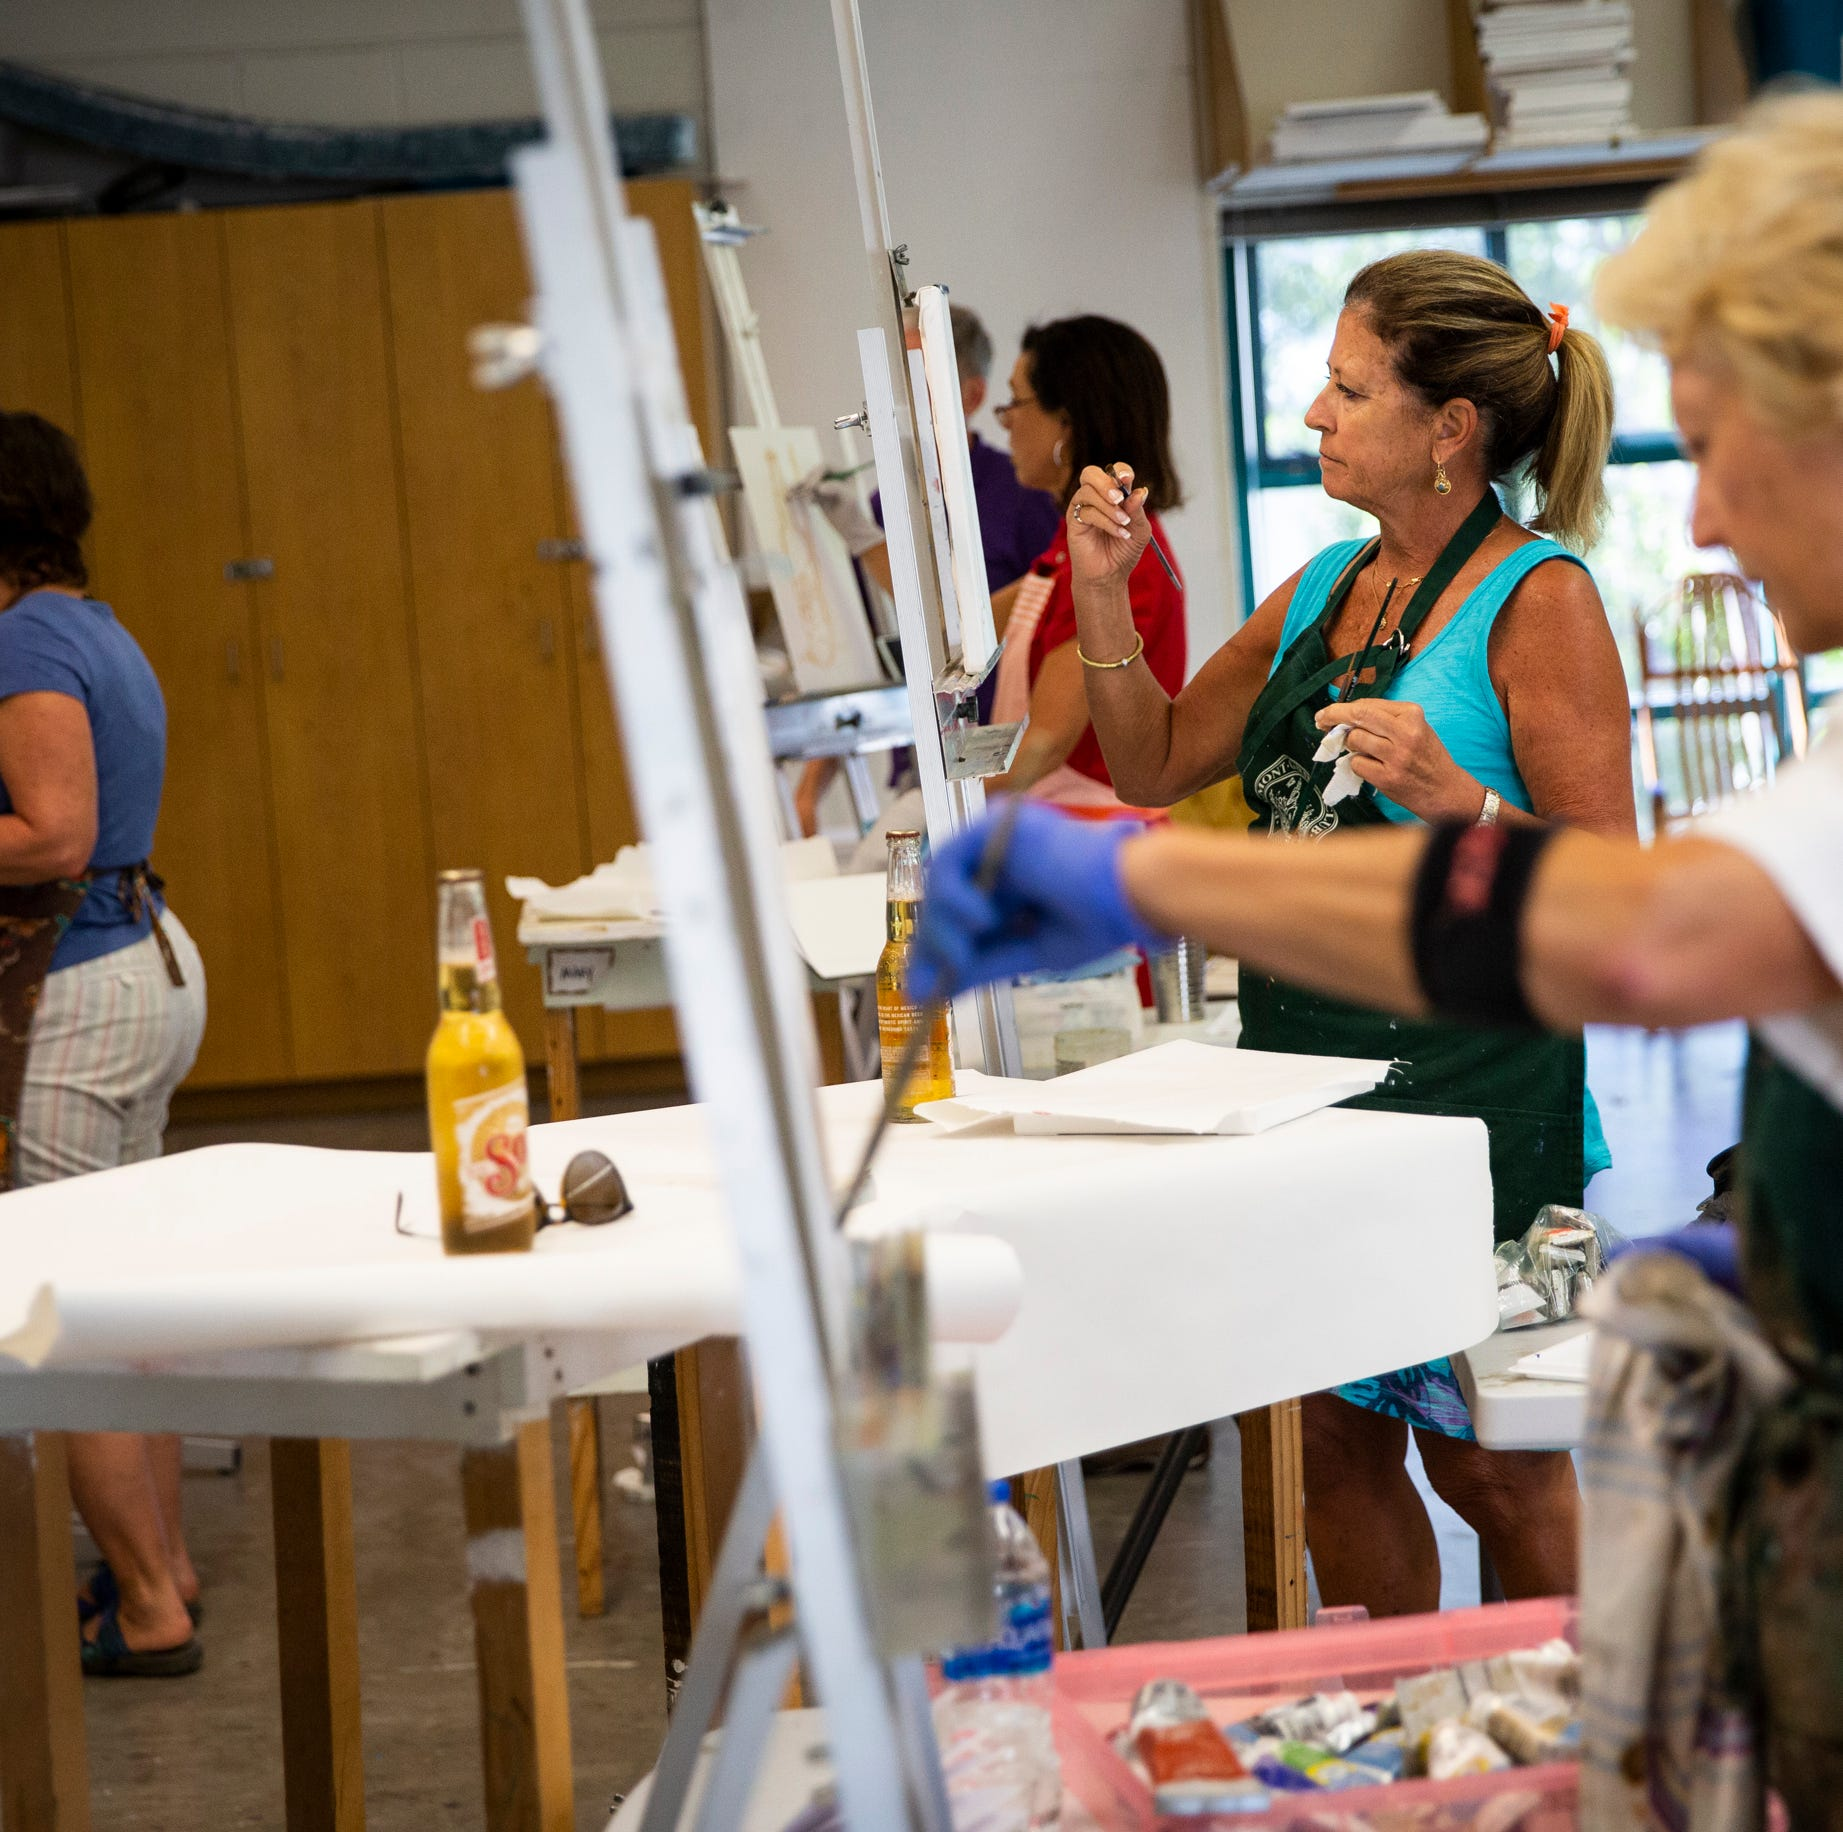 Running with brushes: Naples Art Association hits 65 years in full stride